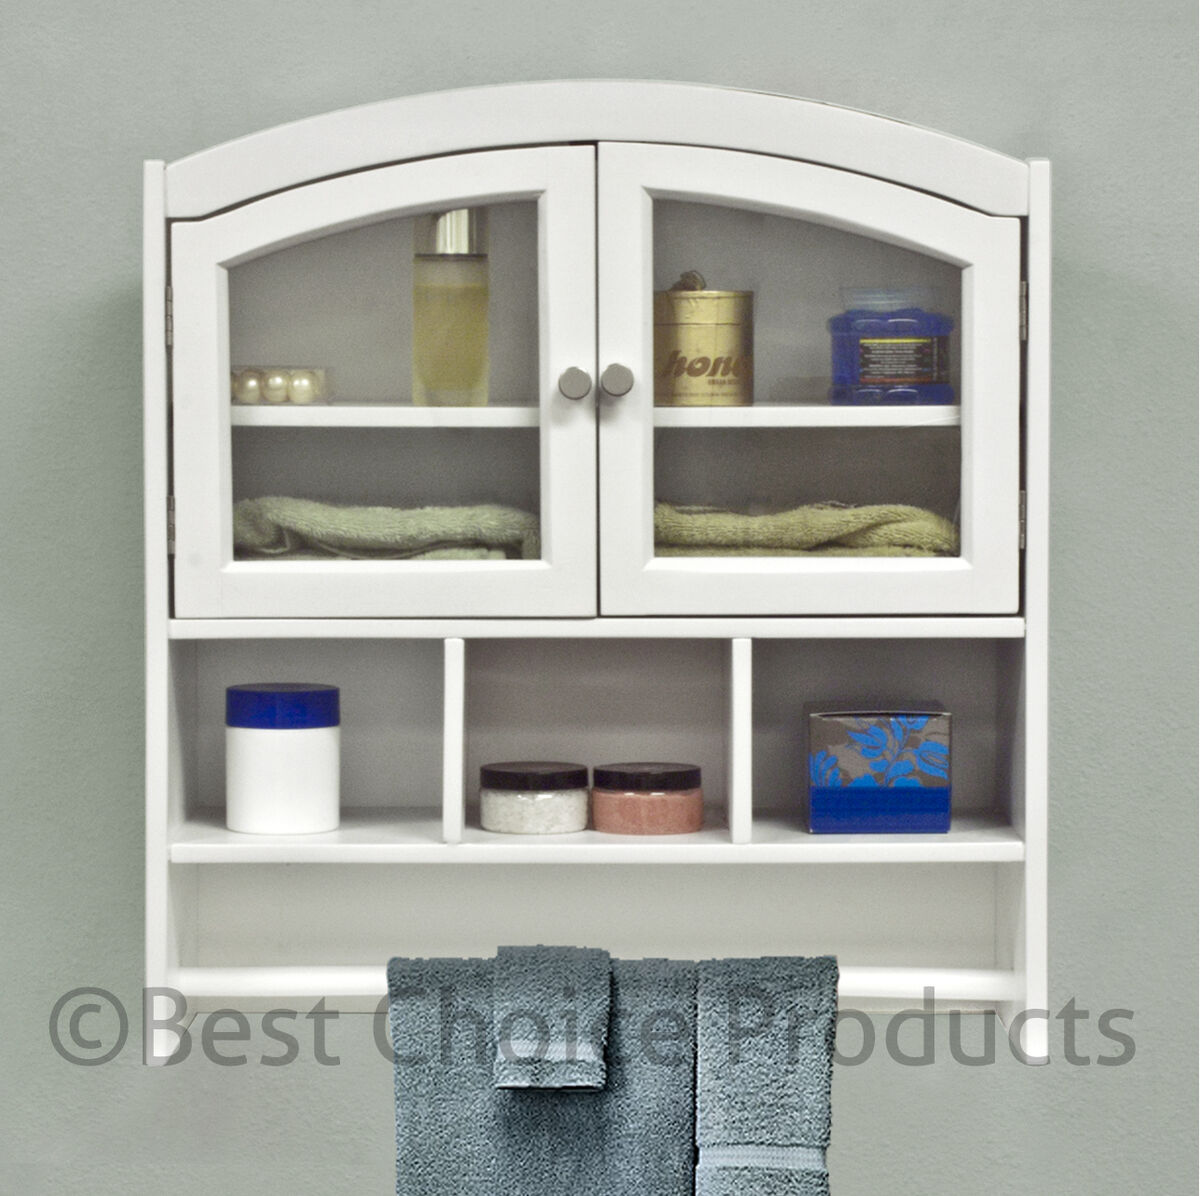 Bathroom wall mounted storage cabinets - Objects Of Design 184 Wall Mounted Storage